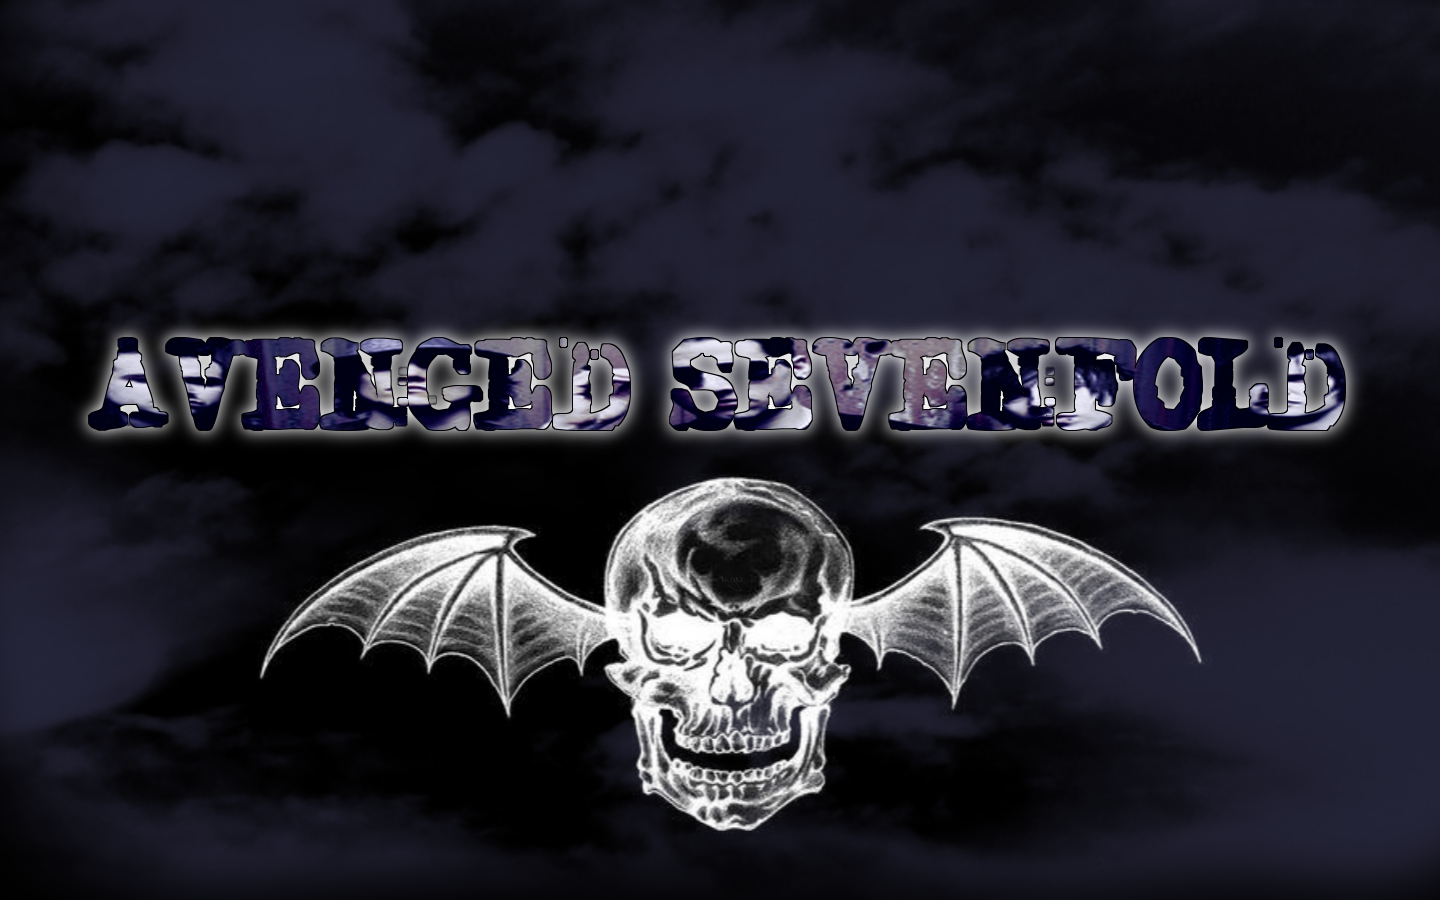 wallpapers hd for mac Avenged Sevenfold Wallpaper High 1440x900